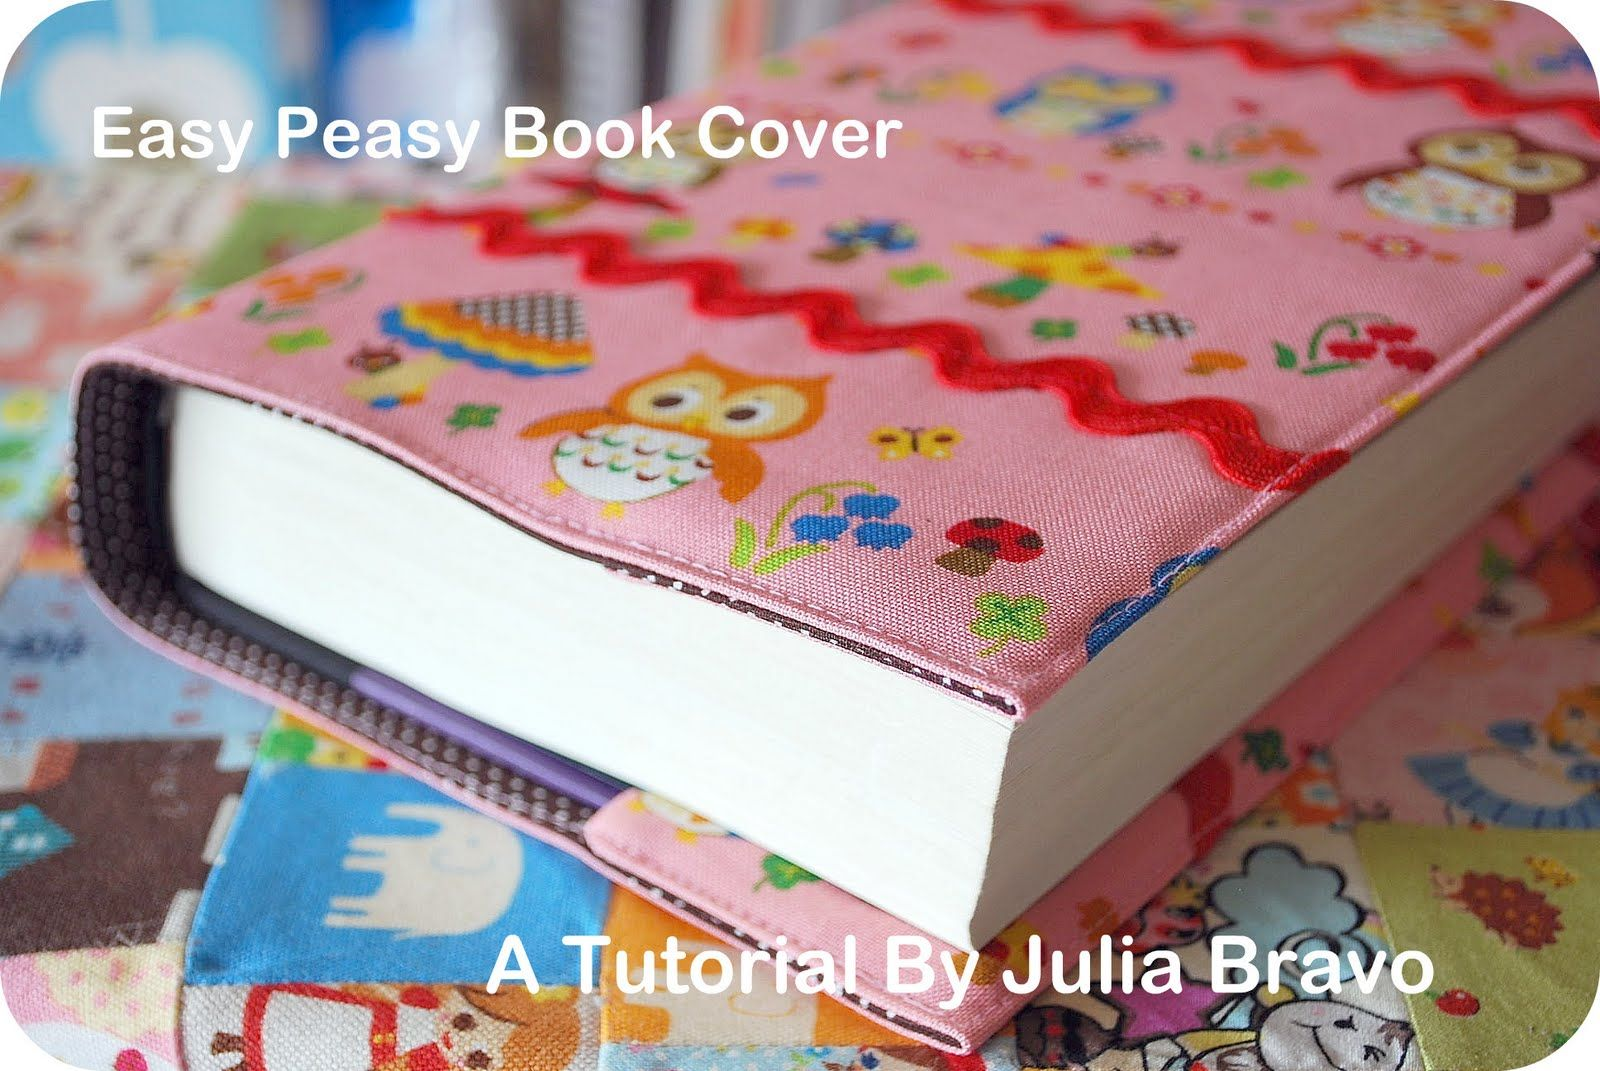 Book Cover Sewing Expo : Stitches book cover tutorial image heavy sewing